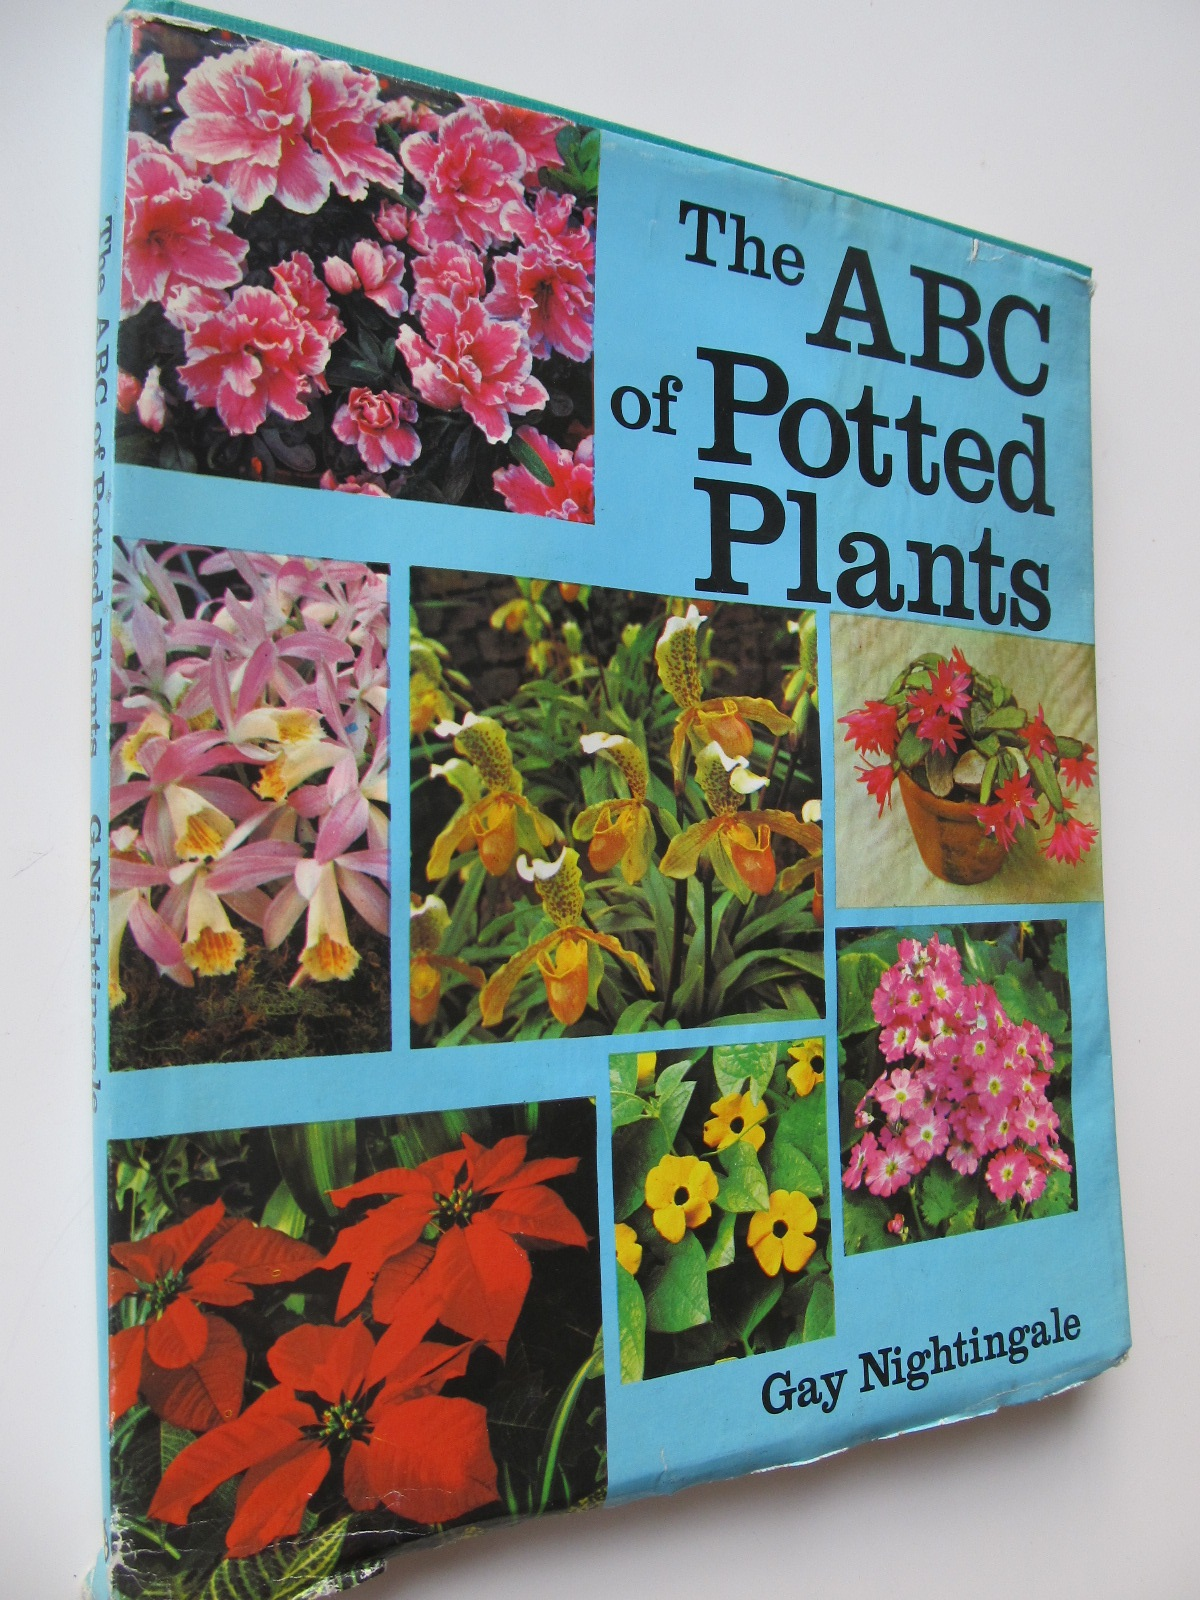 Carte The ABC of Potted Plants - Gay Nightingale